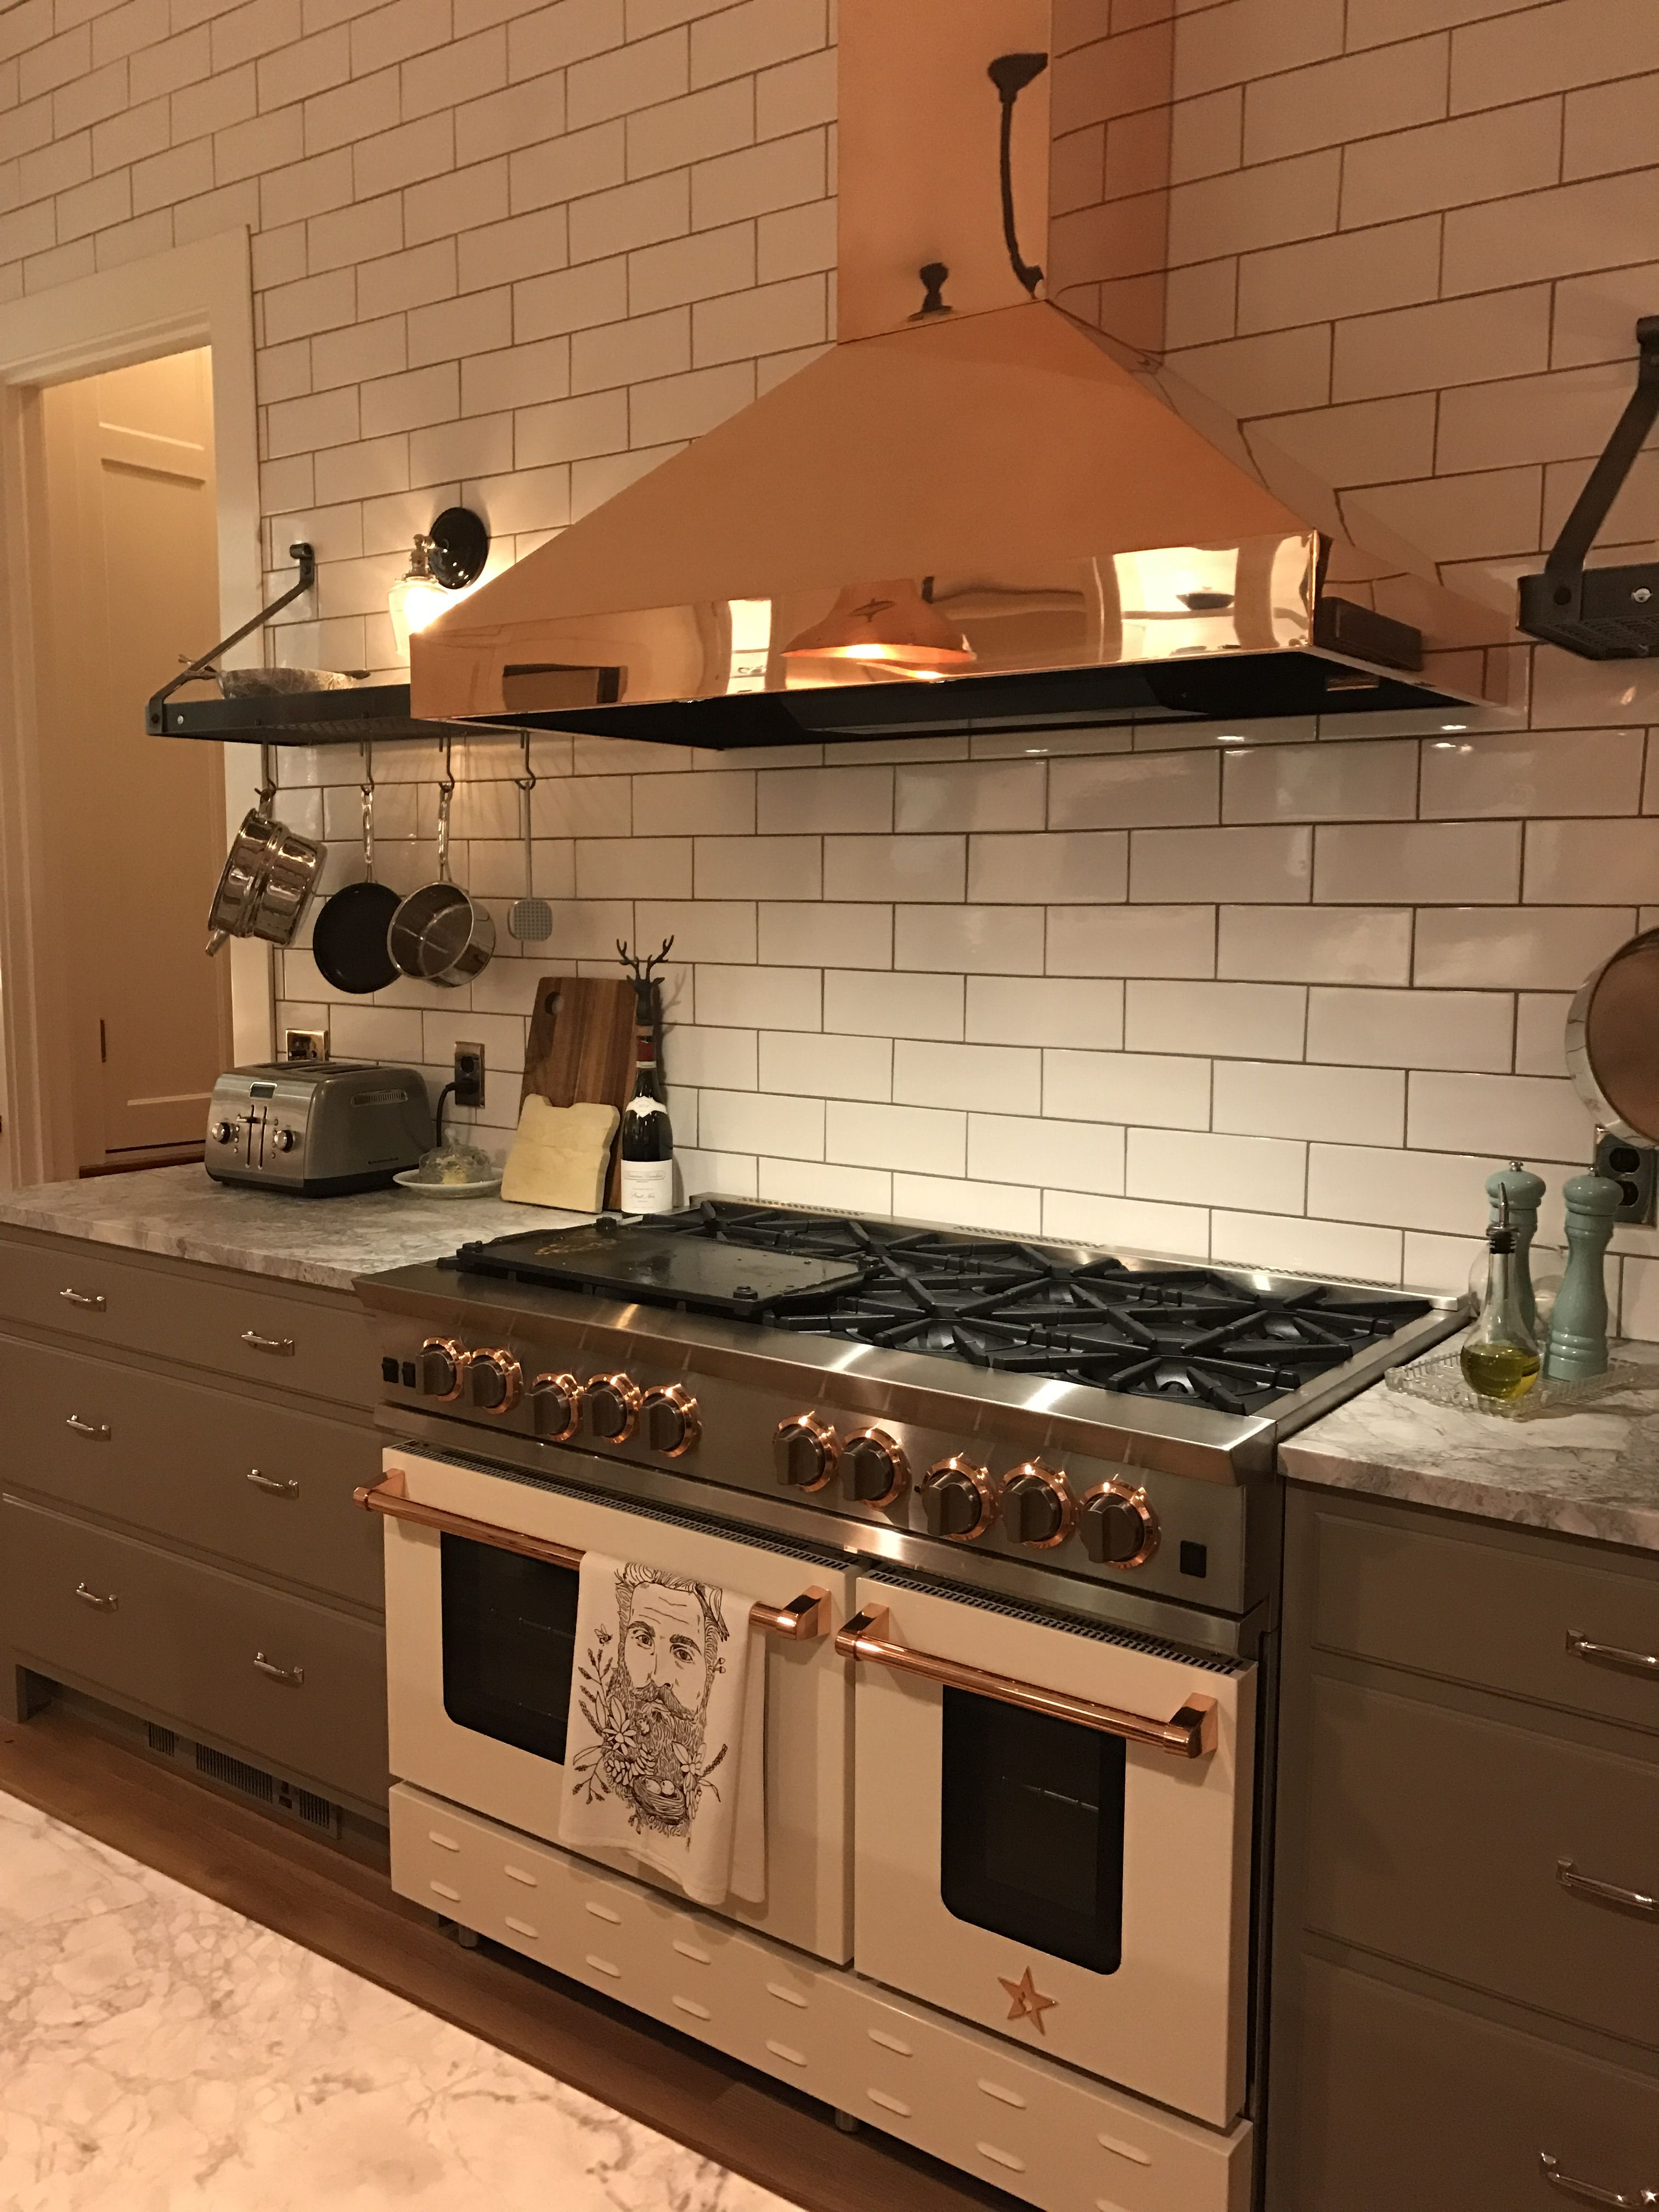 Blue Star Stove With Copper Trim And Copper Vent A Hood